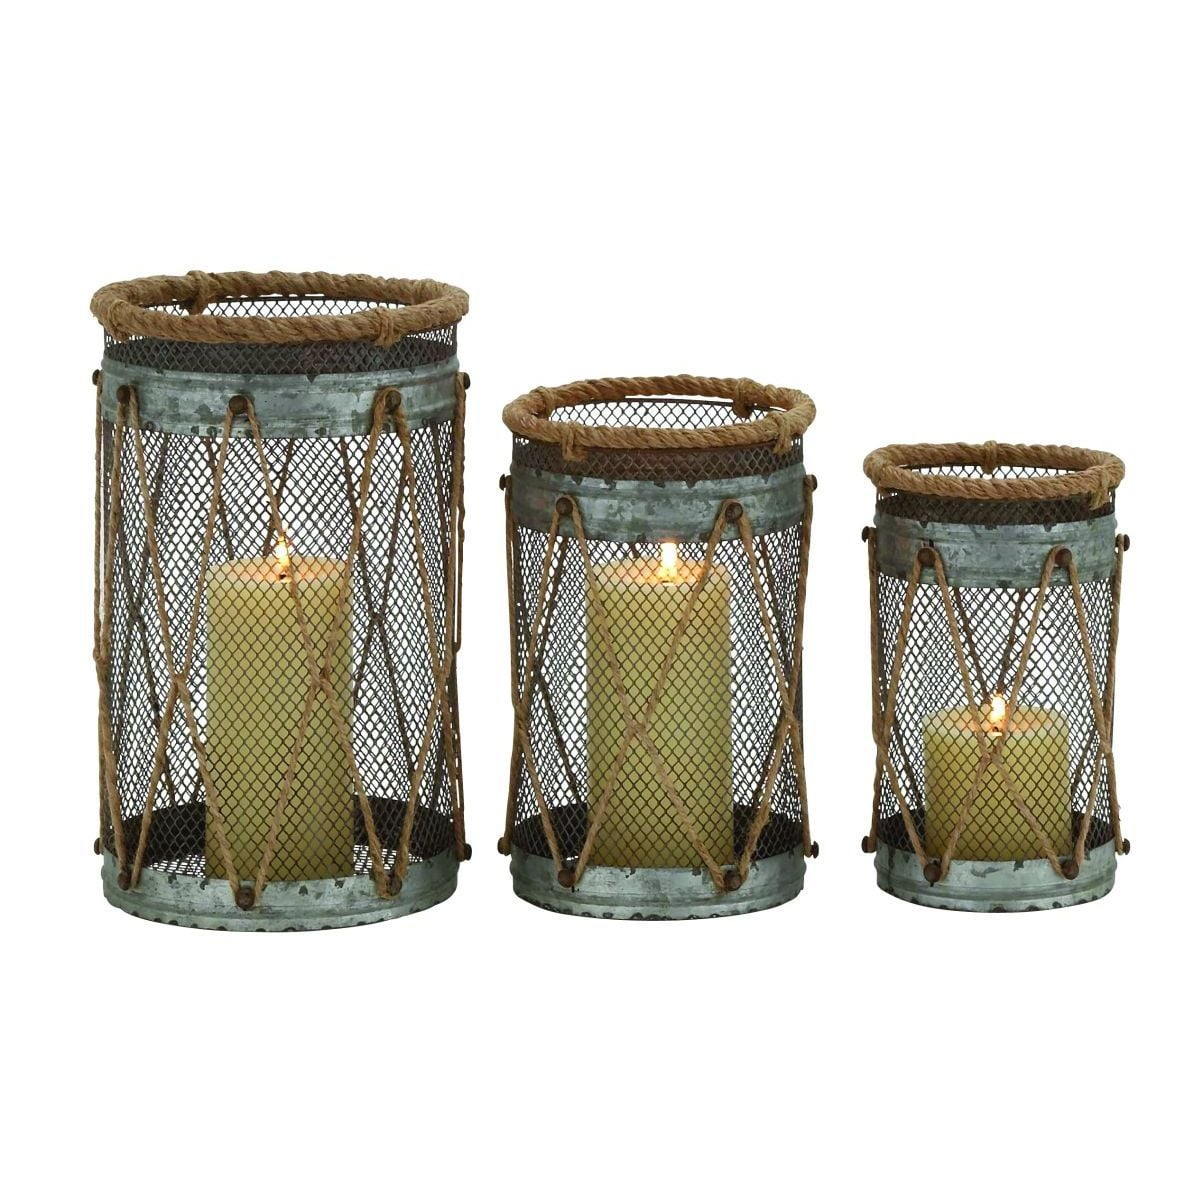 Metal Rope 8-, 9-, 11-inches High Candle Holder